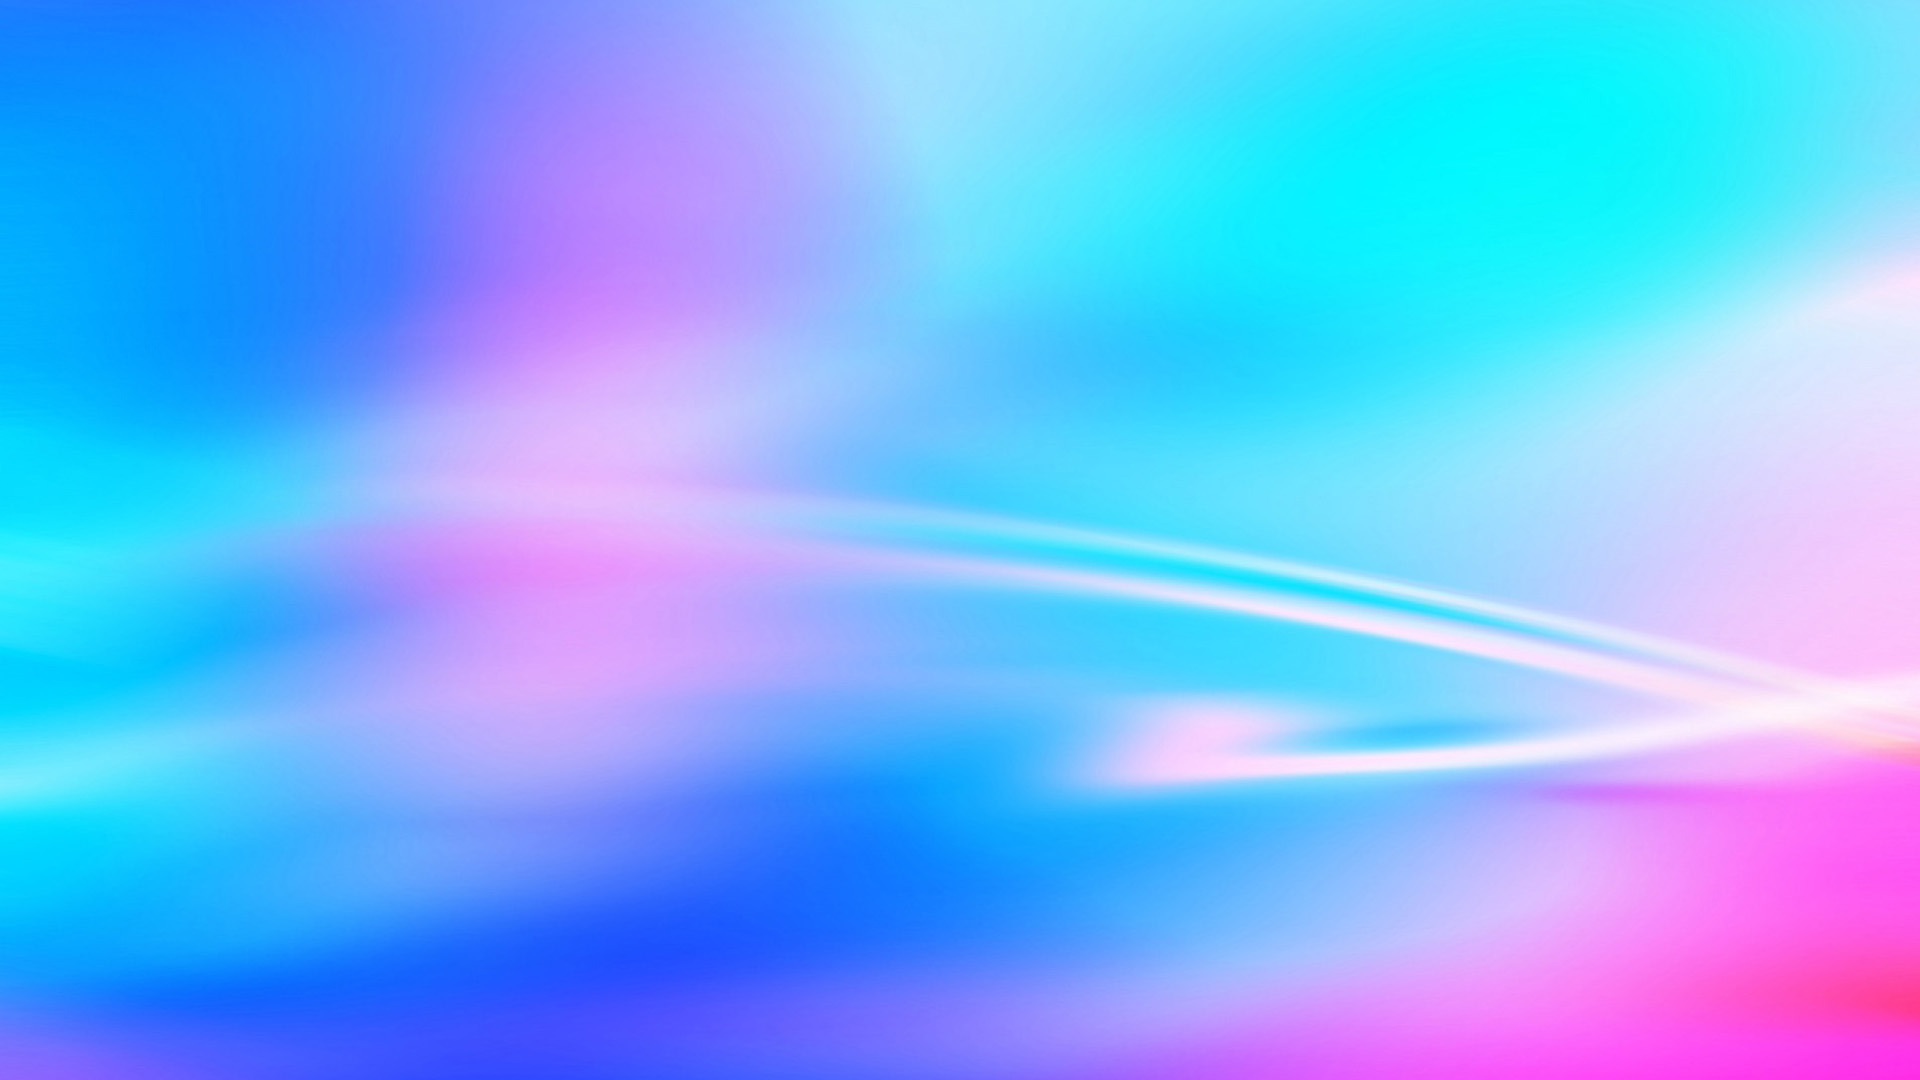 cool wallpapers blue and pink - photo #3